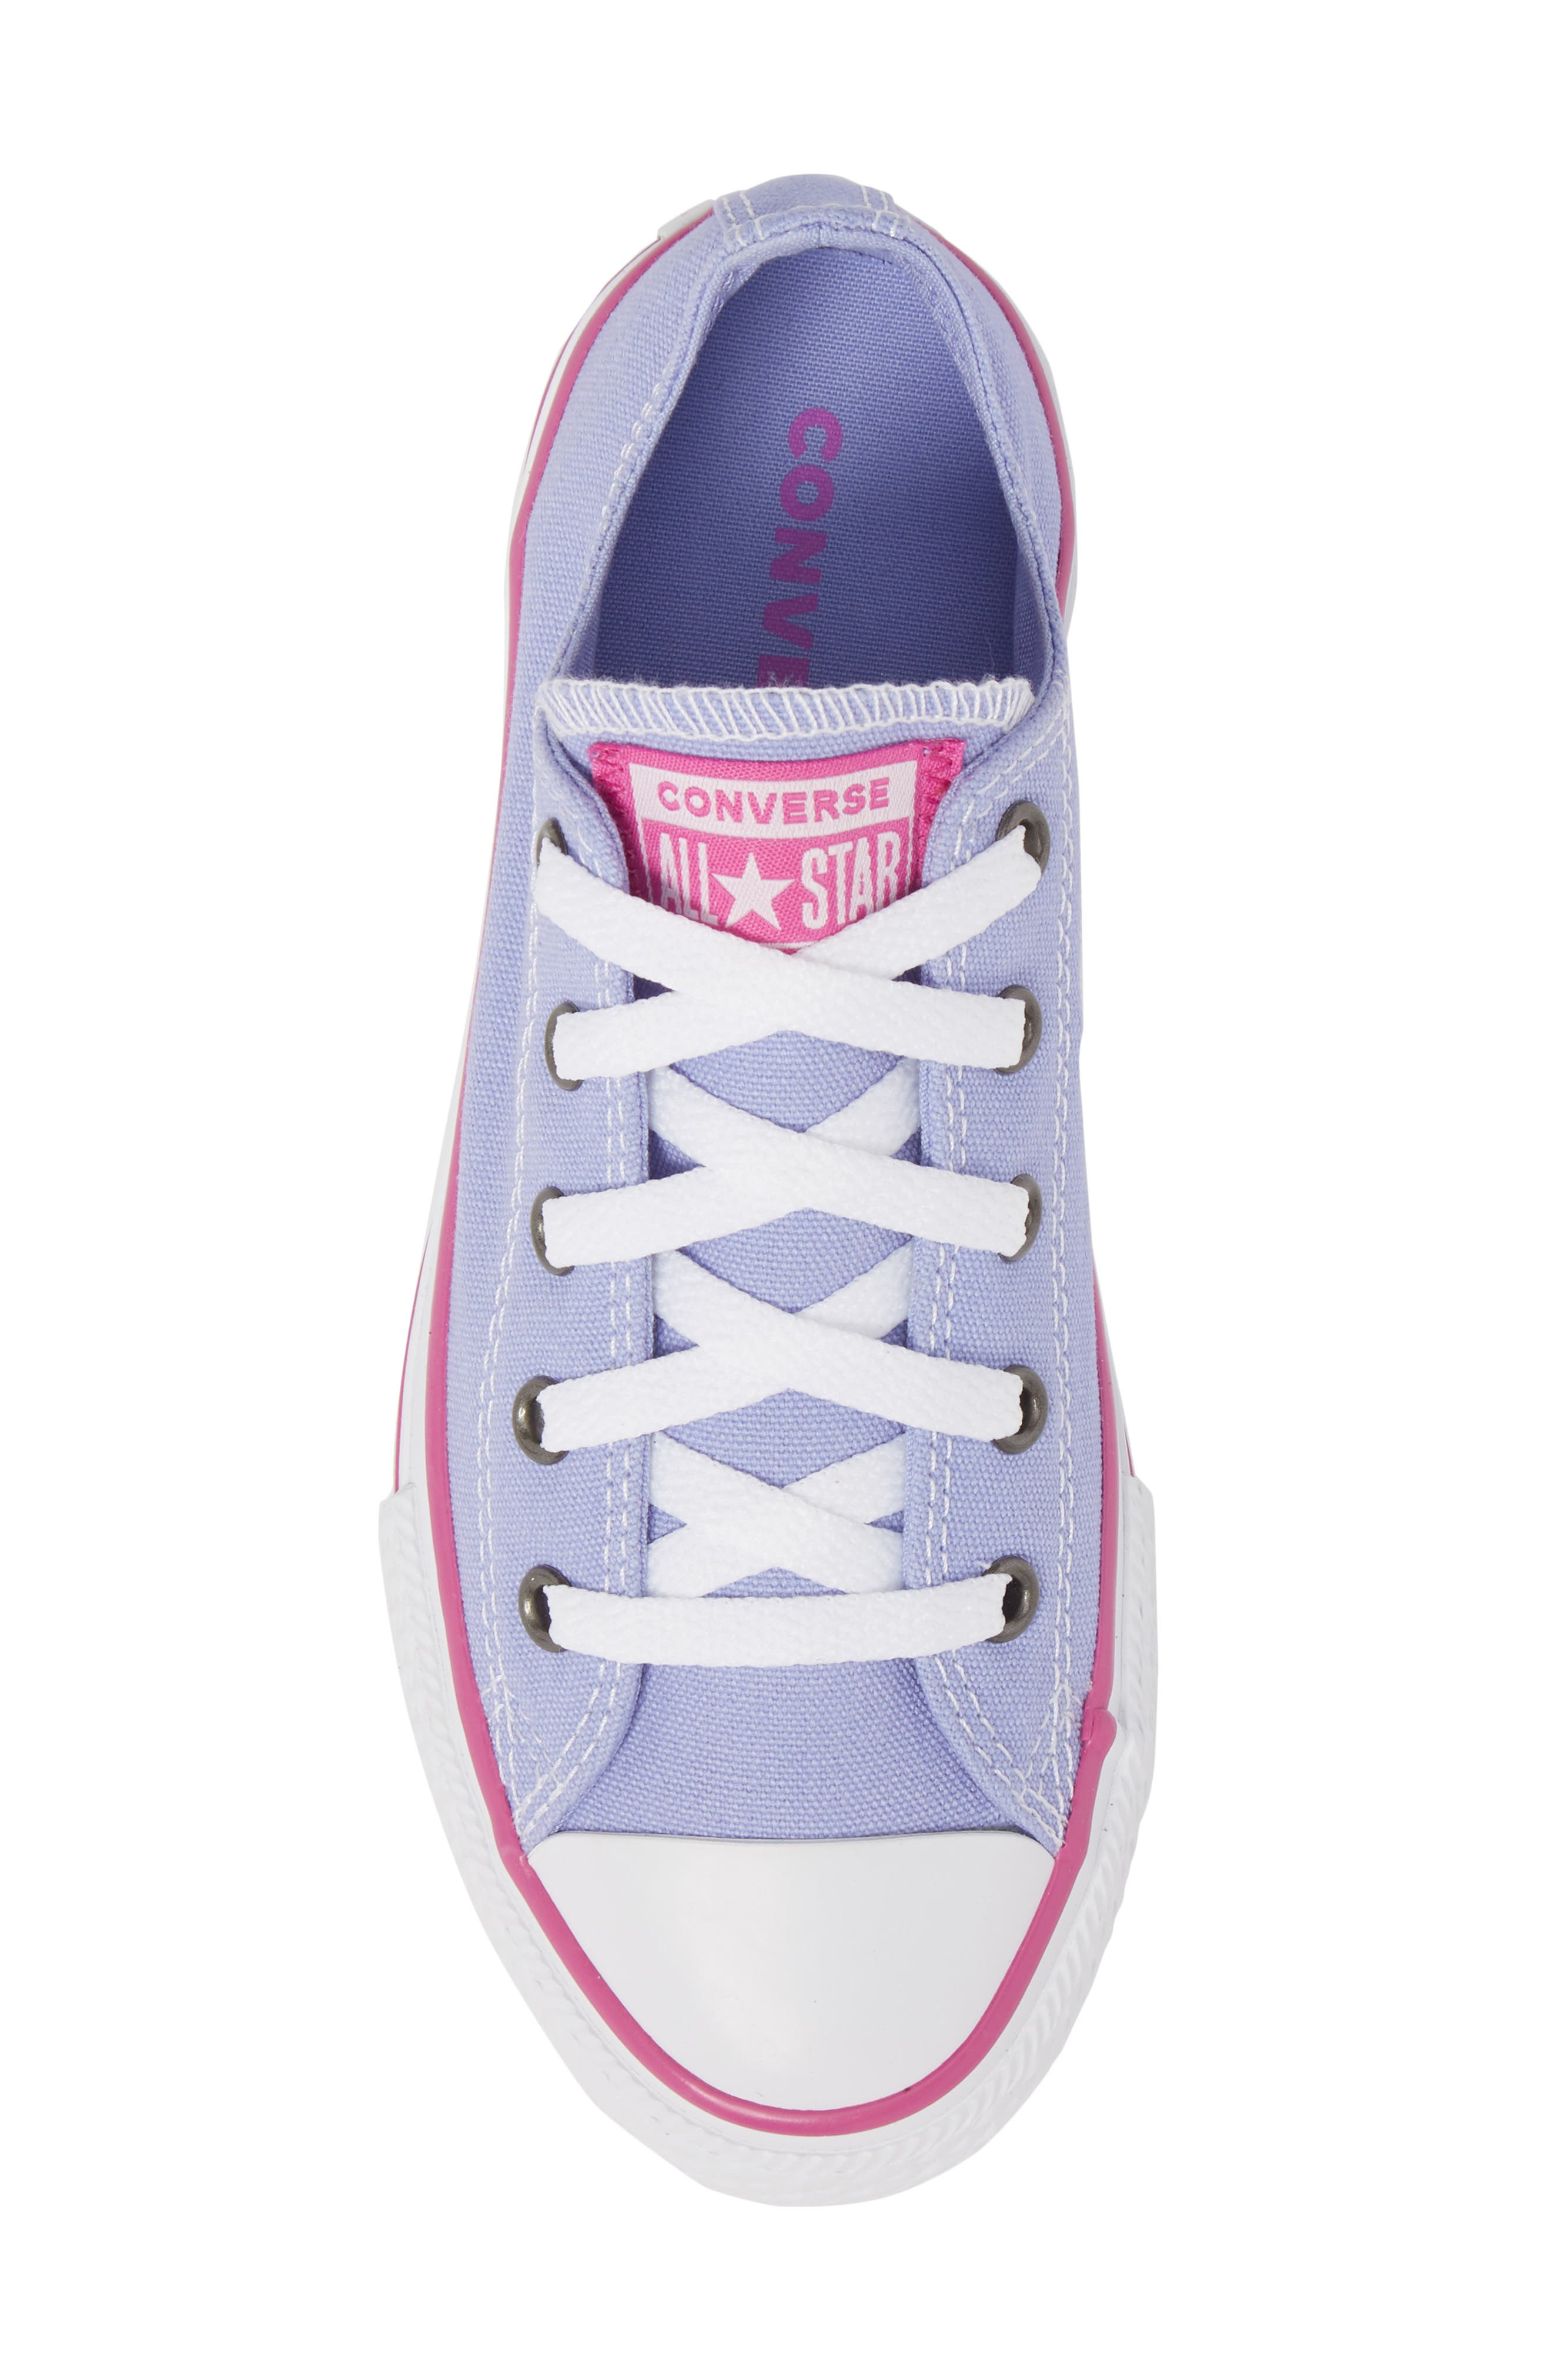 All Star<sup>®</sup> Low Top Sneaker,                             Alternate thumbnail 5, color,                             Twilight Purple